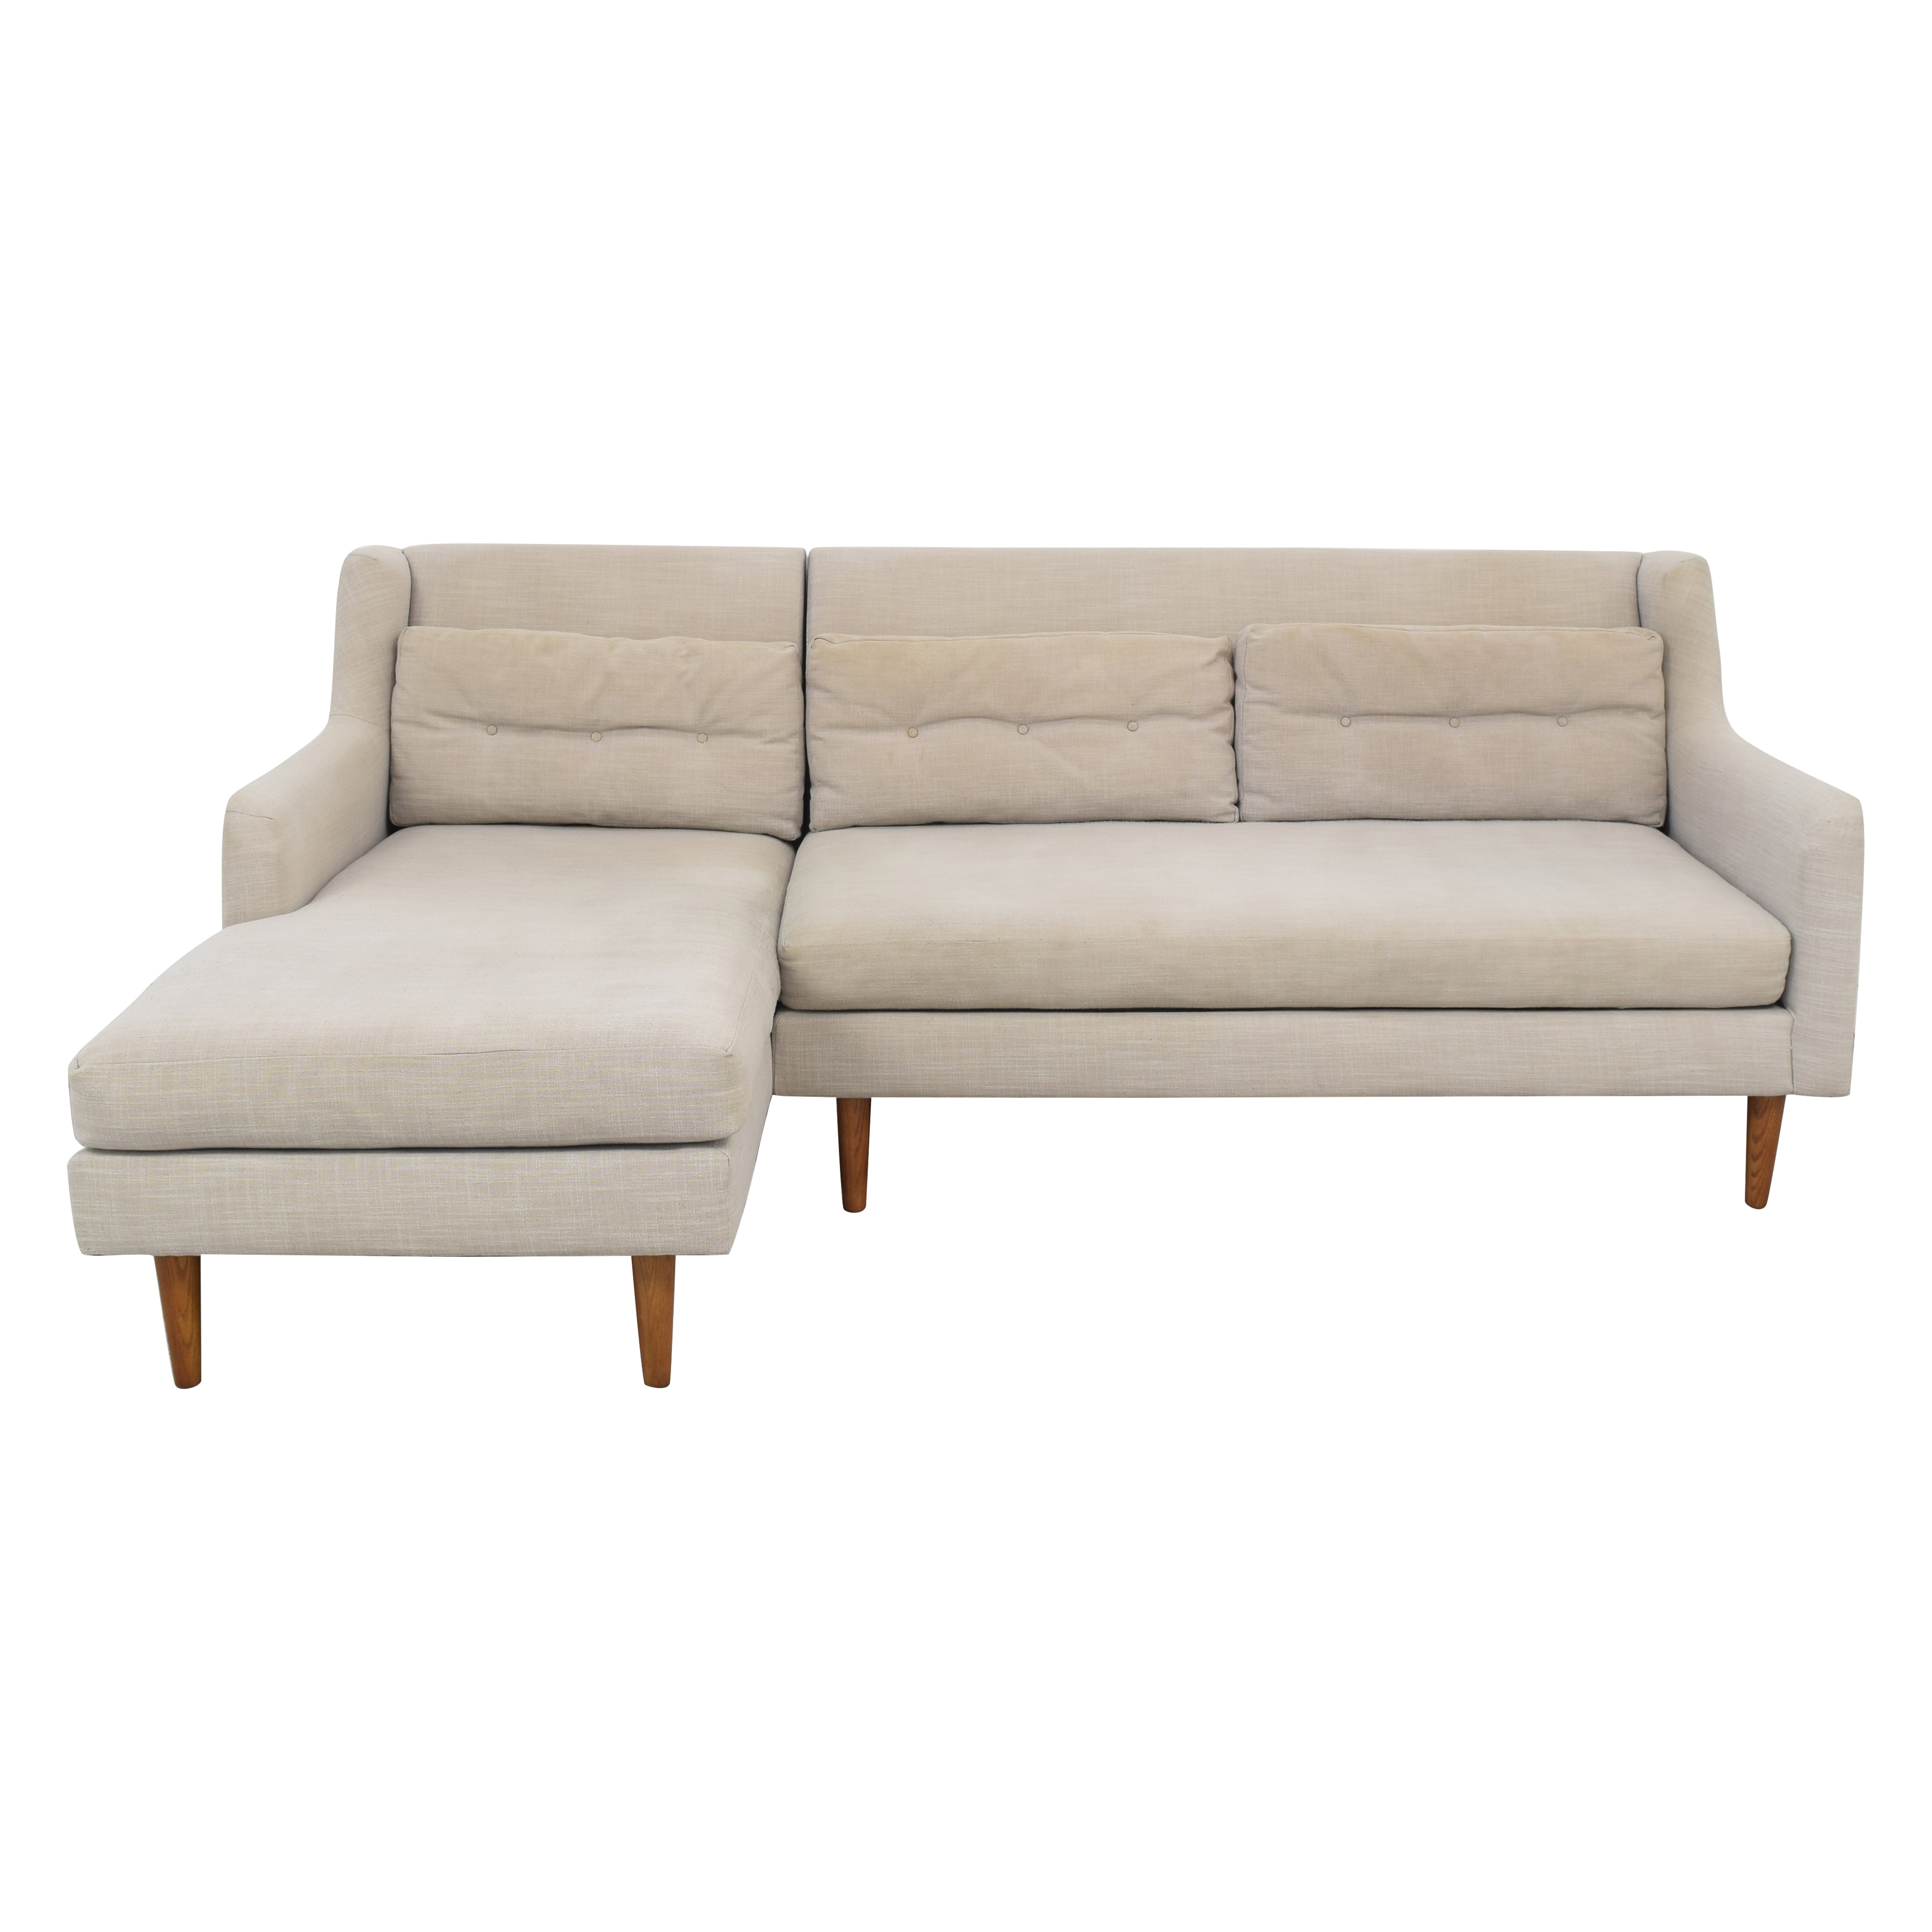 West Elm West Elm Crosby Mid-Century 2-Piece Chaise Sectional nj